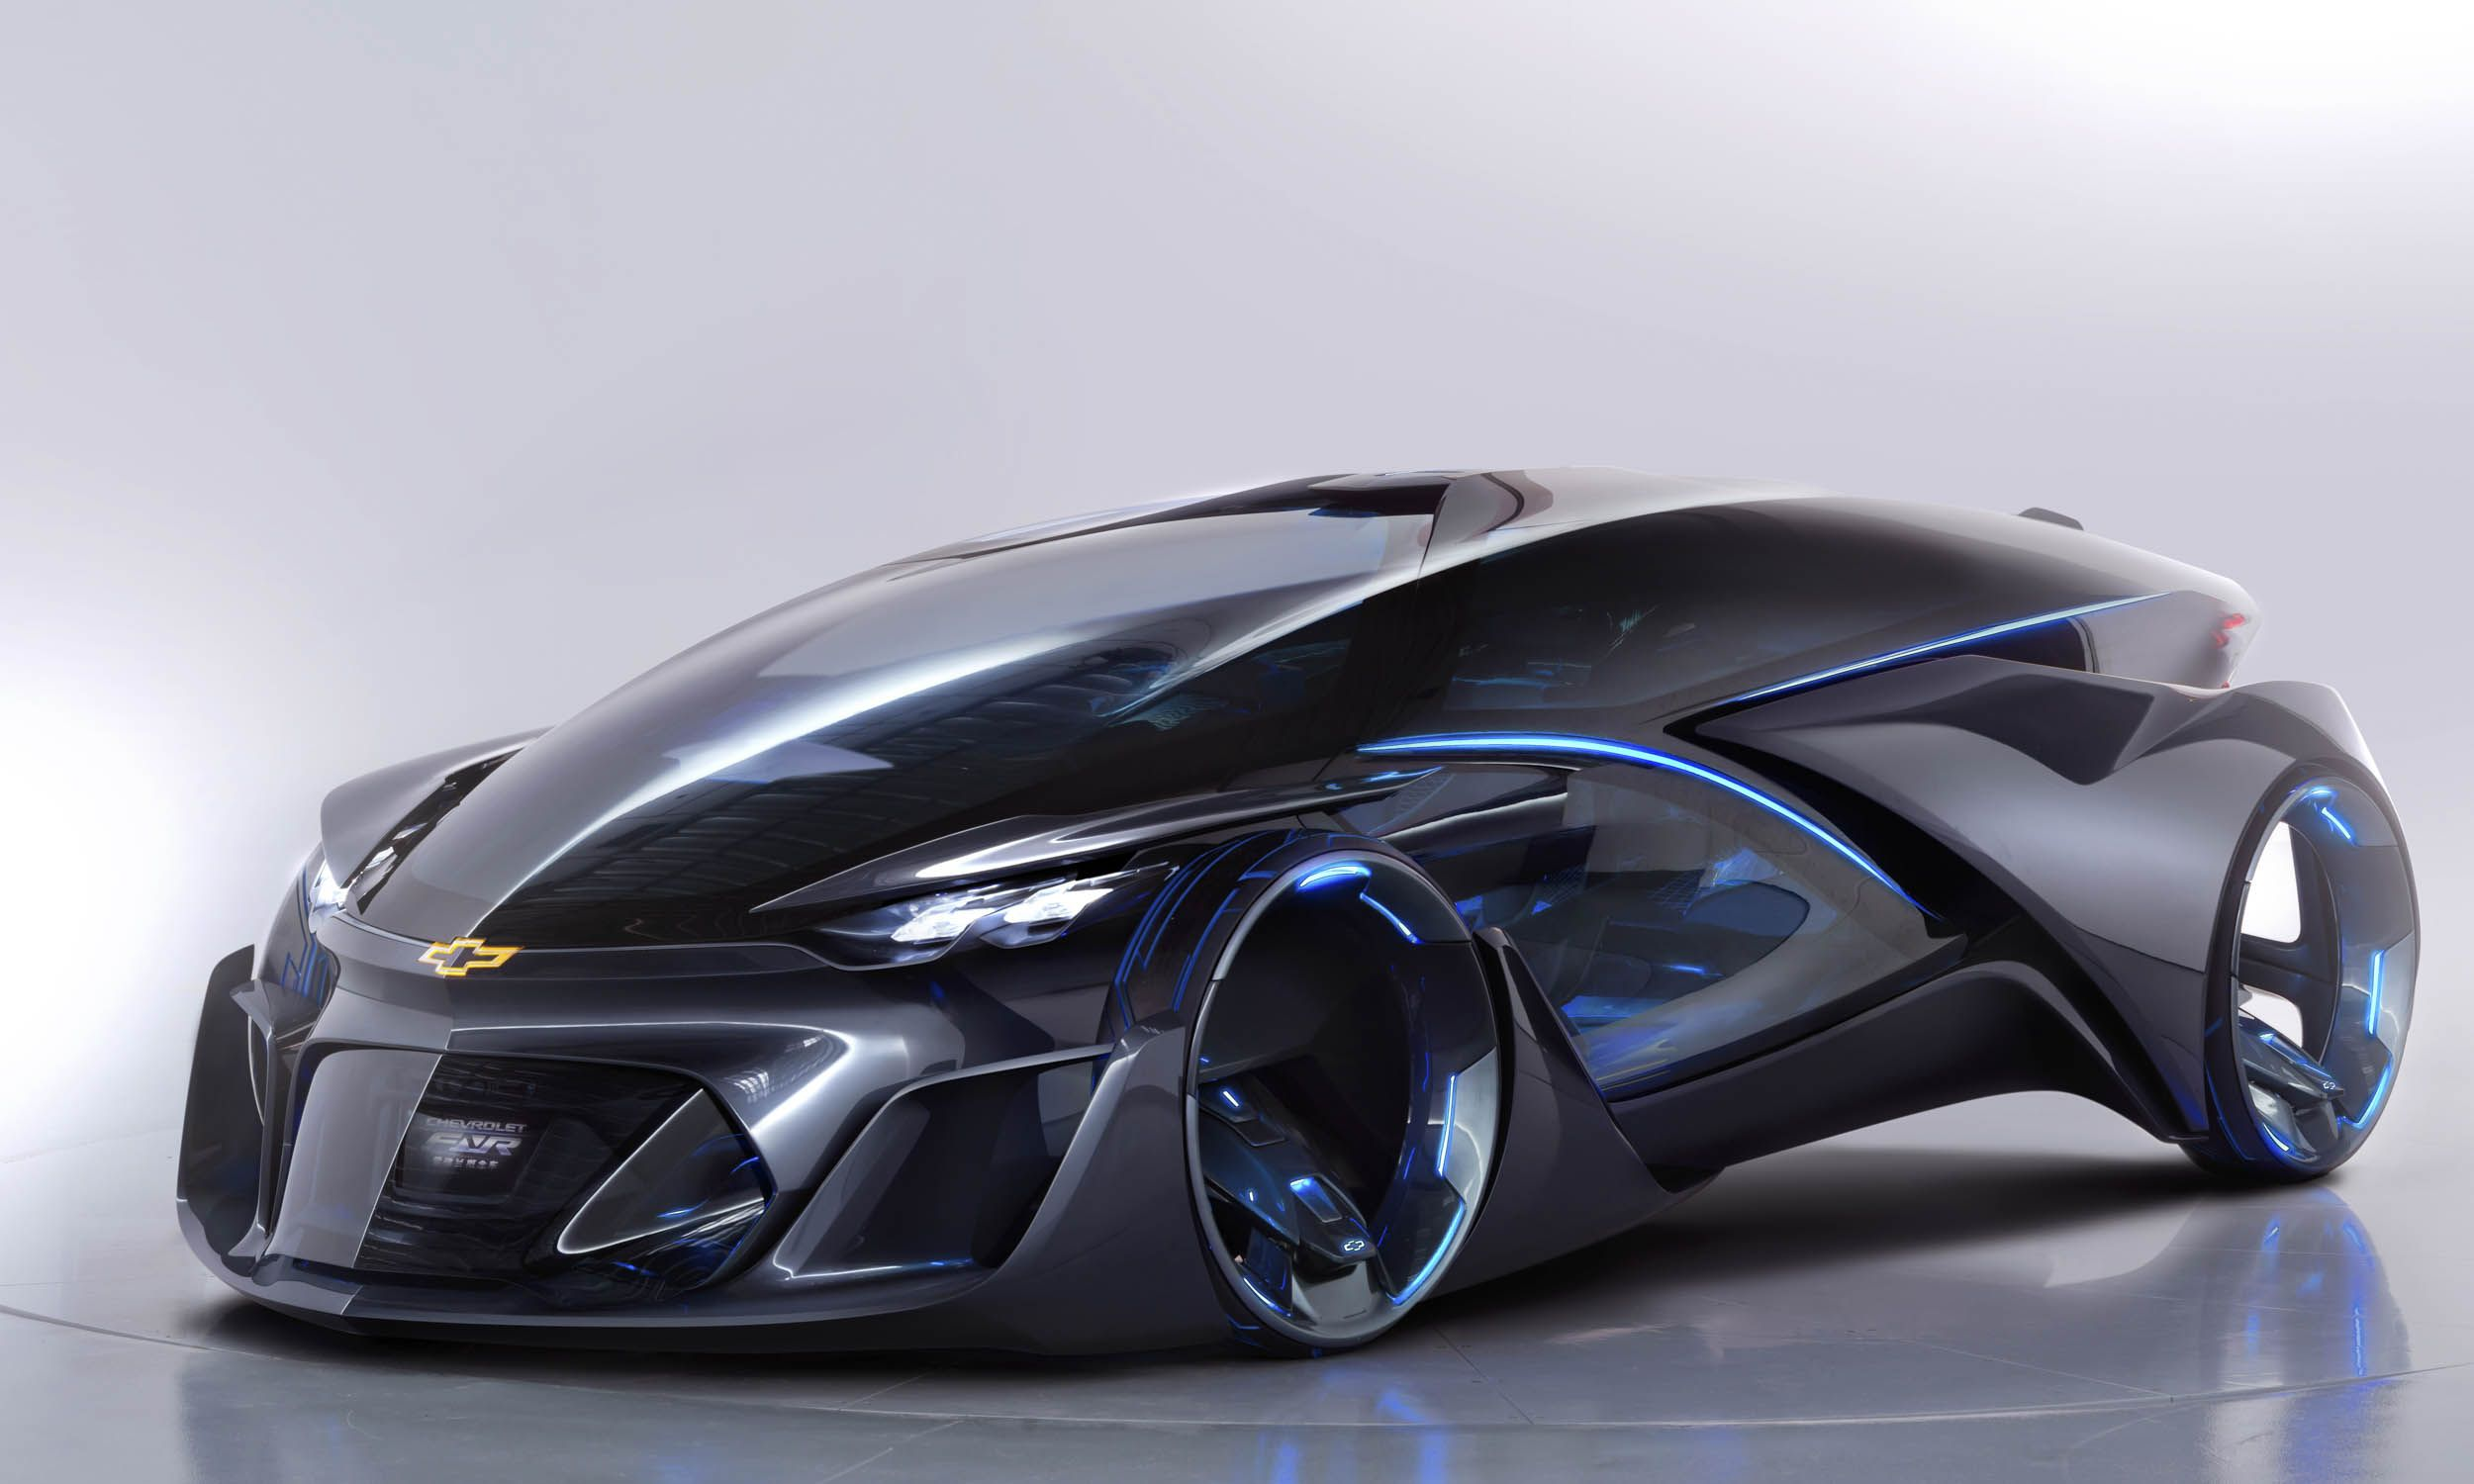 Chevrolet Fnr Concept General Motors Provided A Glimpse Into The